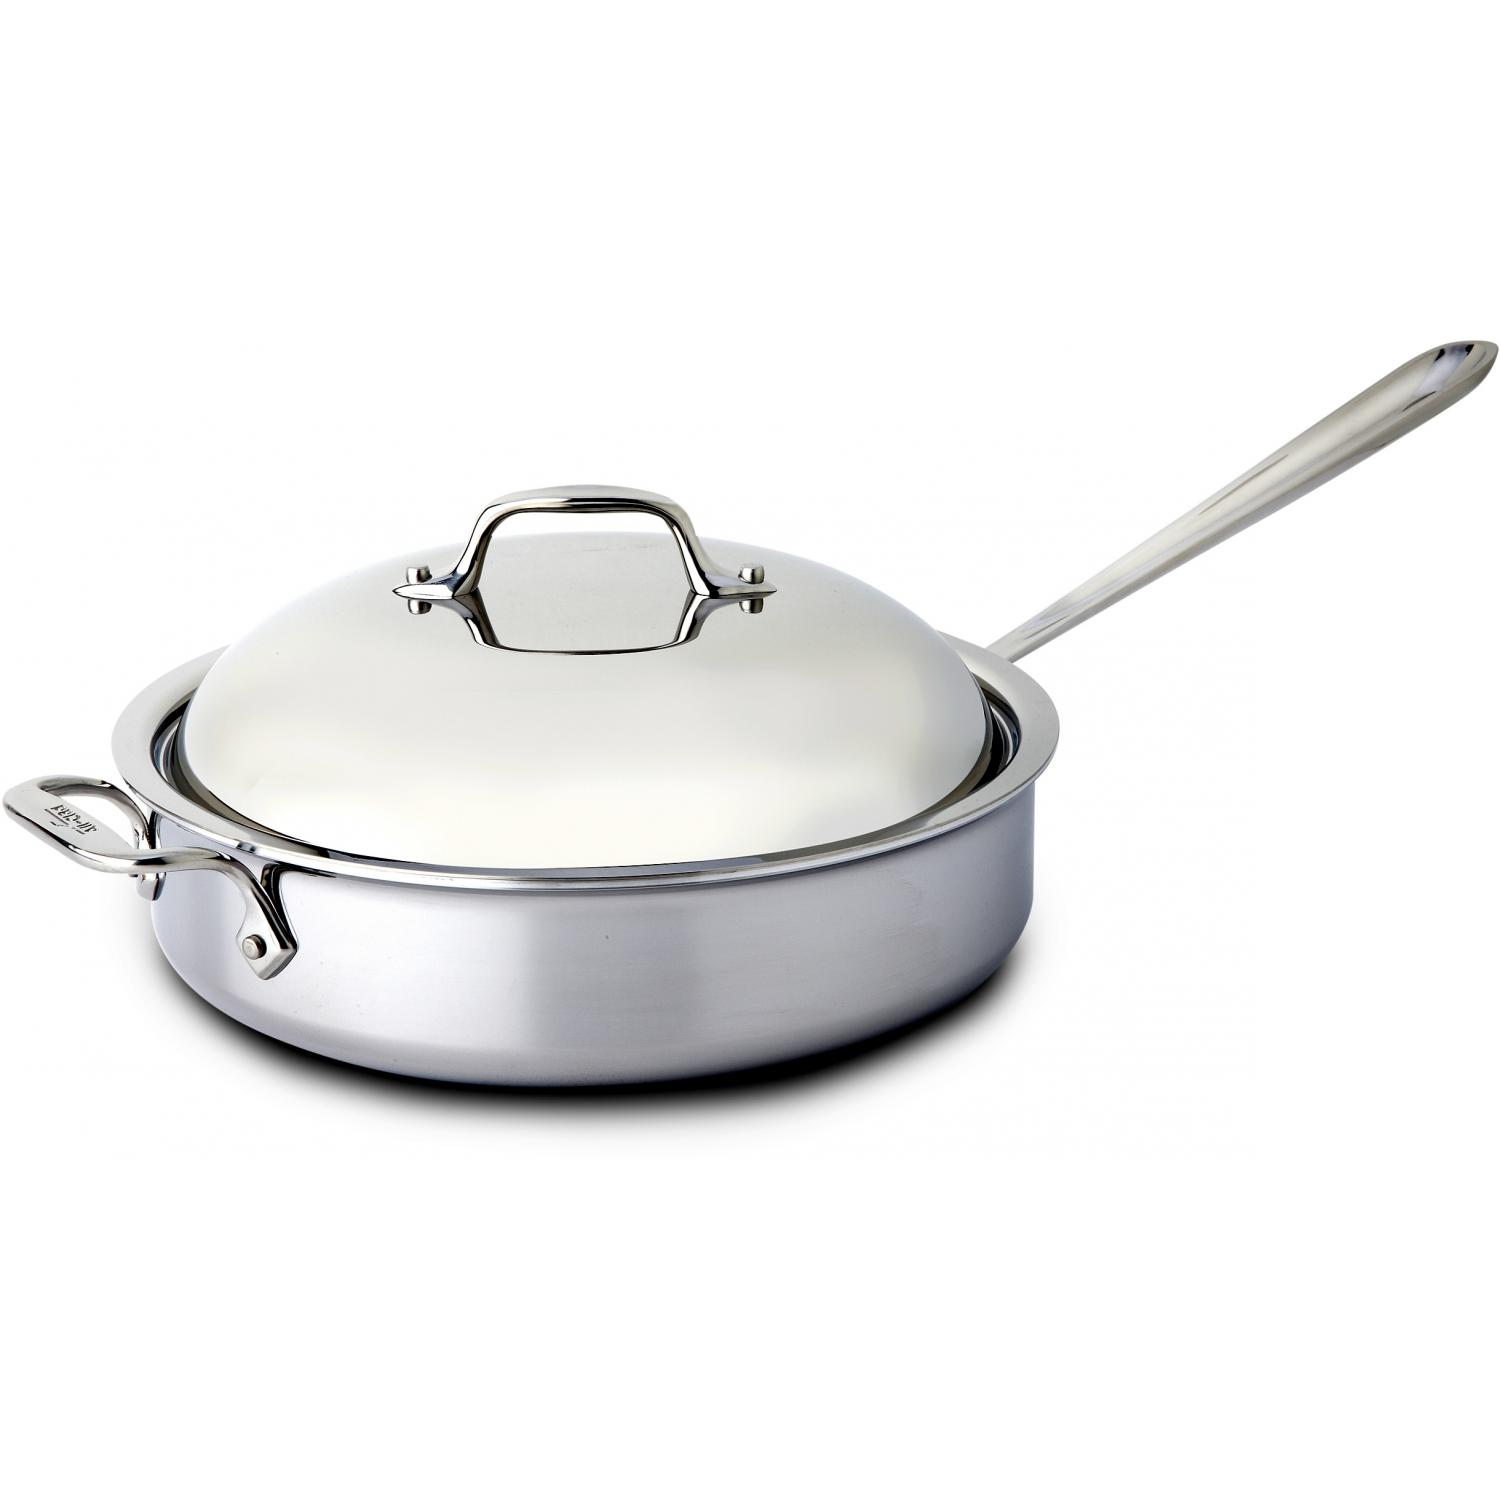 All-Clad Stainless 4-Quart Saute Pan With Domed Lid